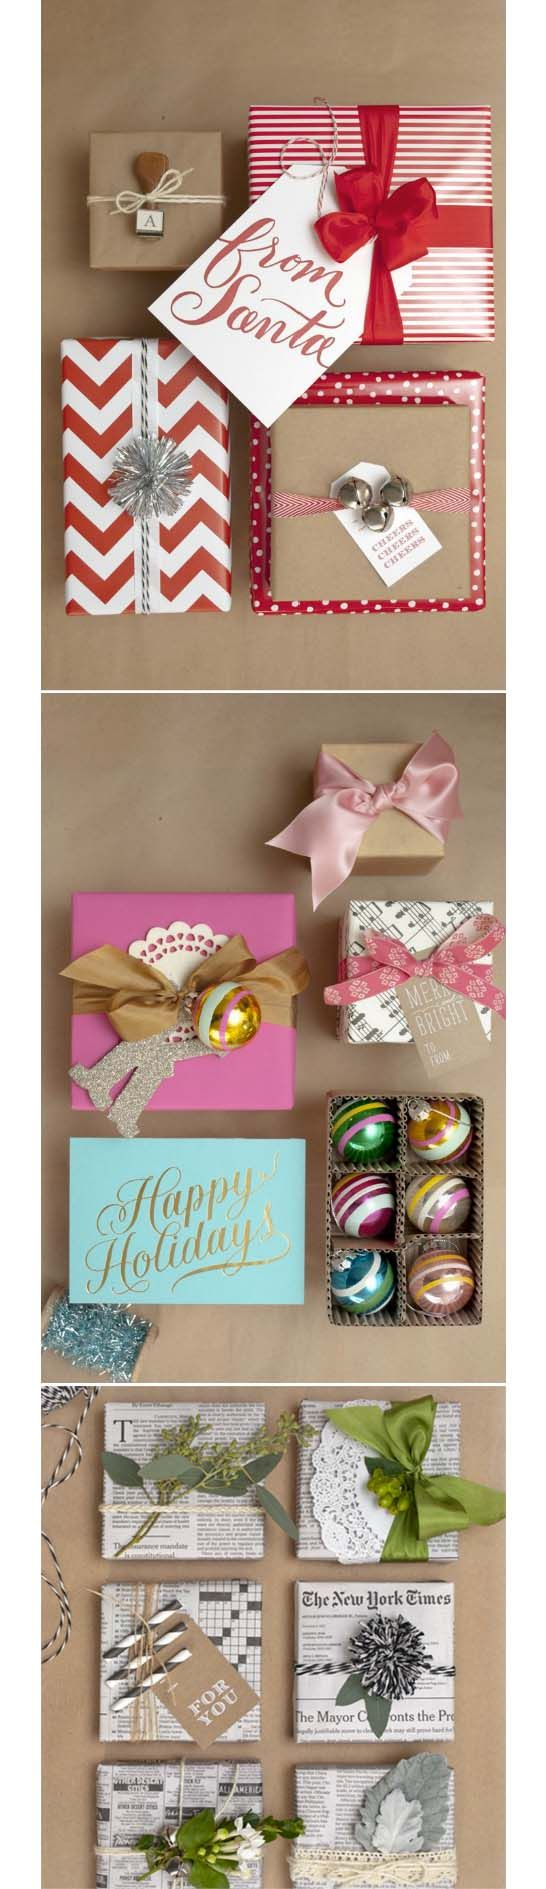 gift wrapping essentials.. If only my gifts looked like this!! #christmas #gifts #wrapping #holidays #winter #decor #crafts #diy